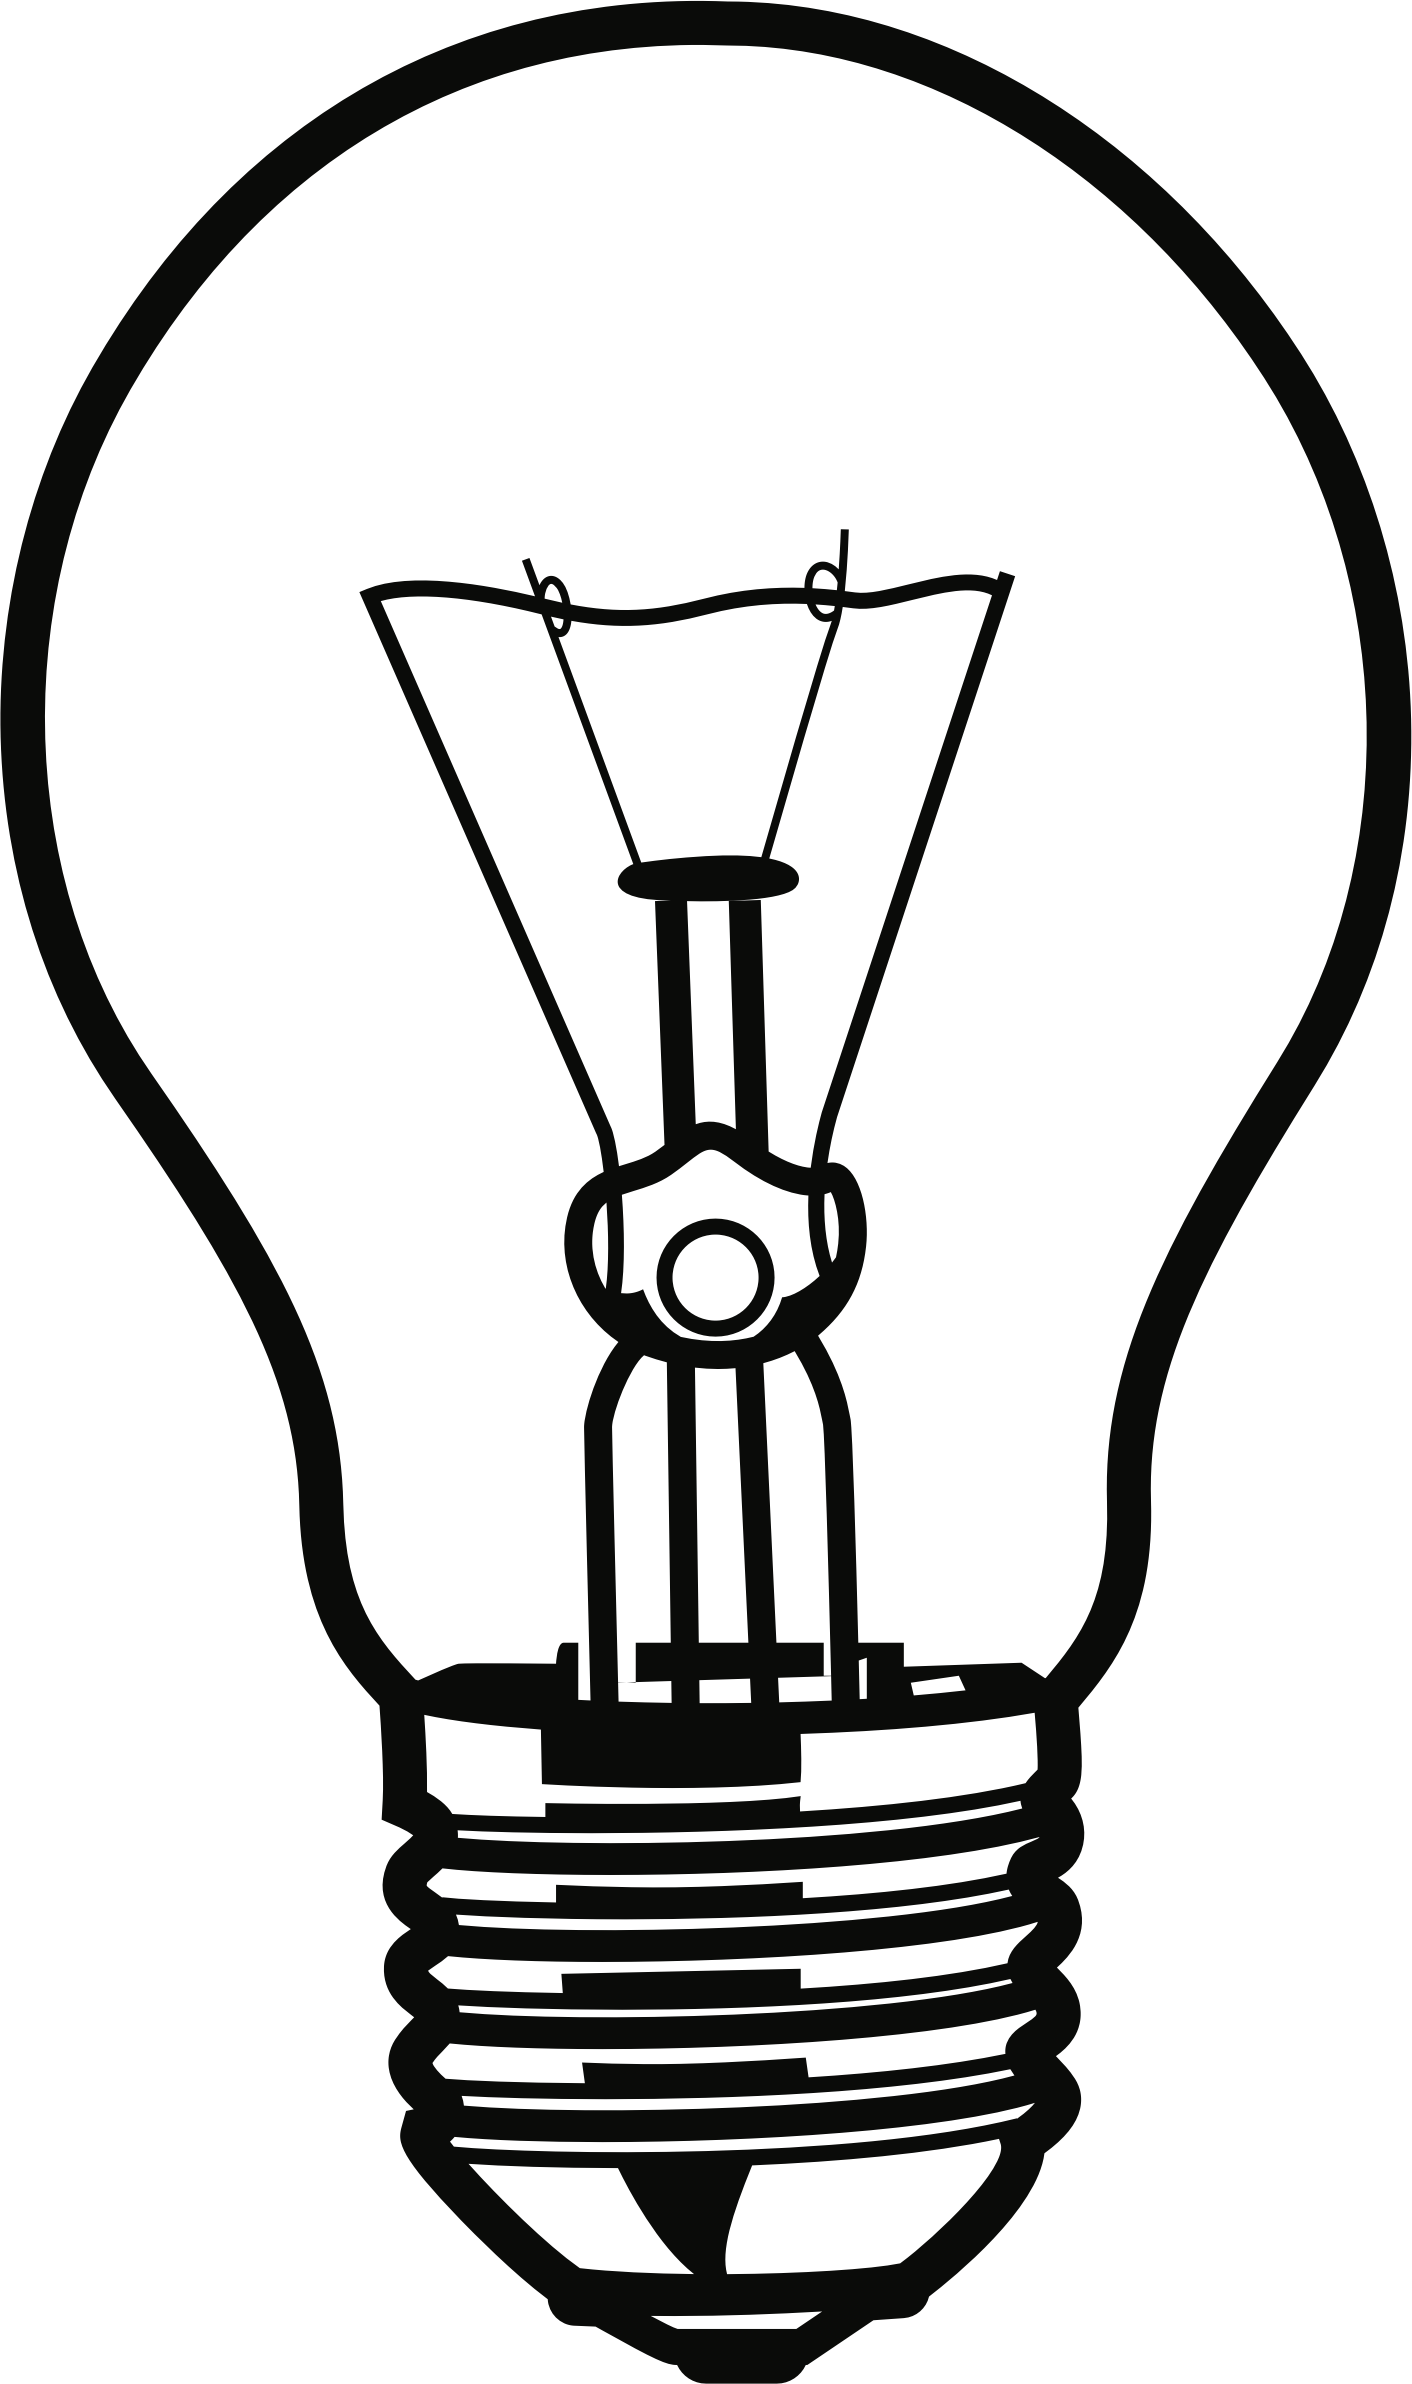 Light Bulb (#5) by oksmith